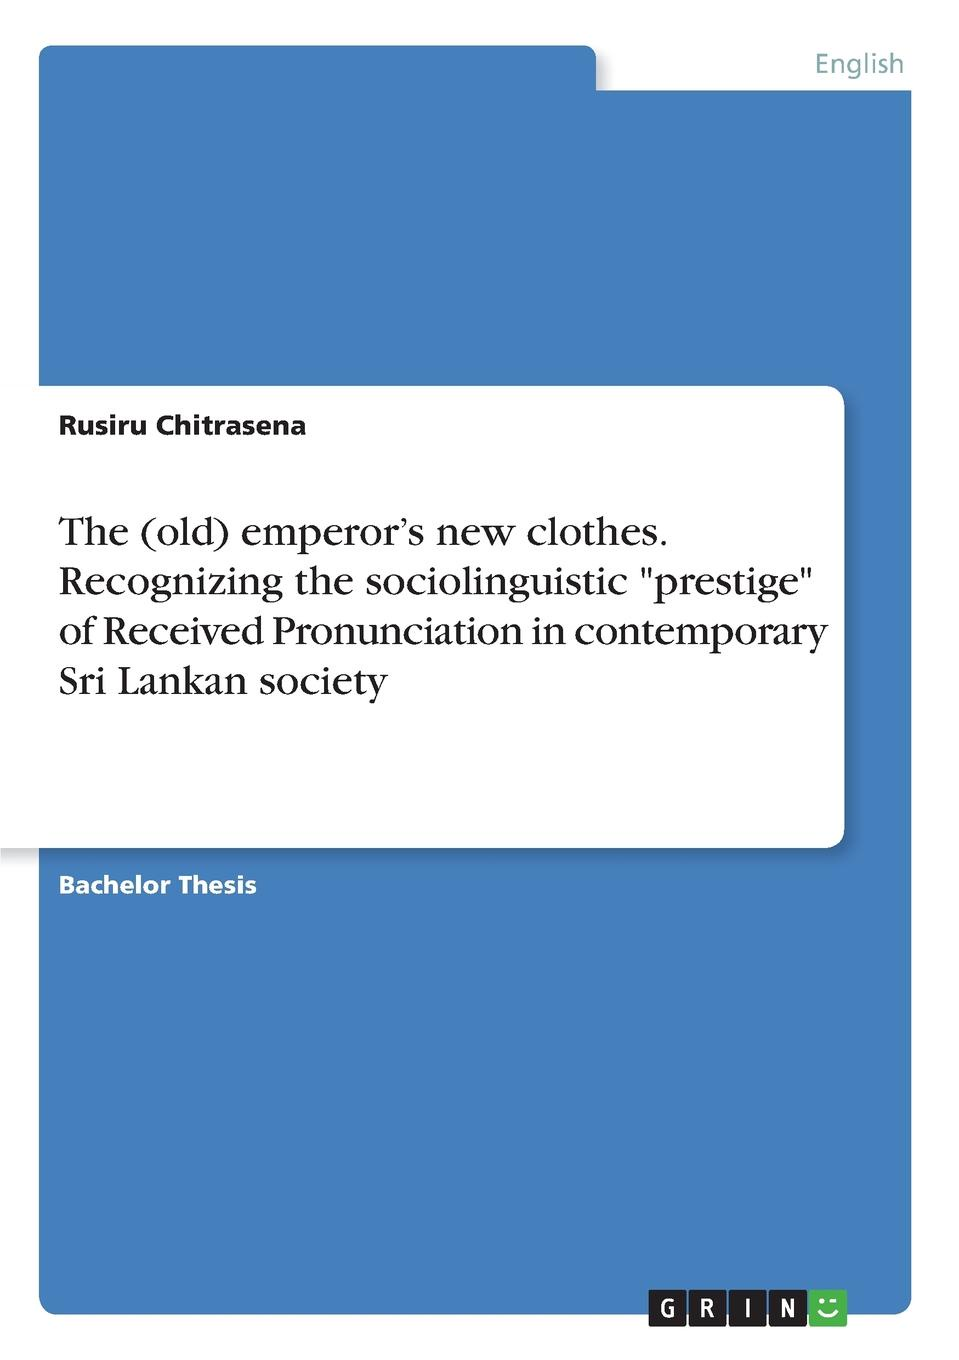 все цены на Rusiru Chitrasena The (old) emperor.s new clothes. Recognizing the sociolinguistic